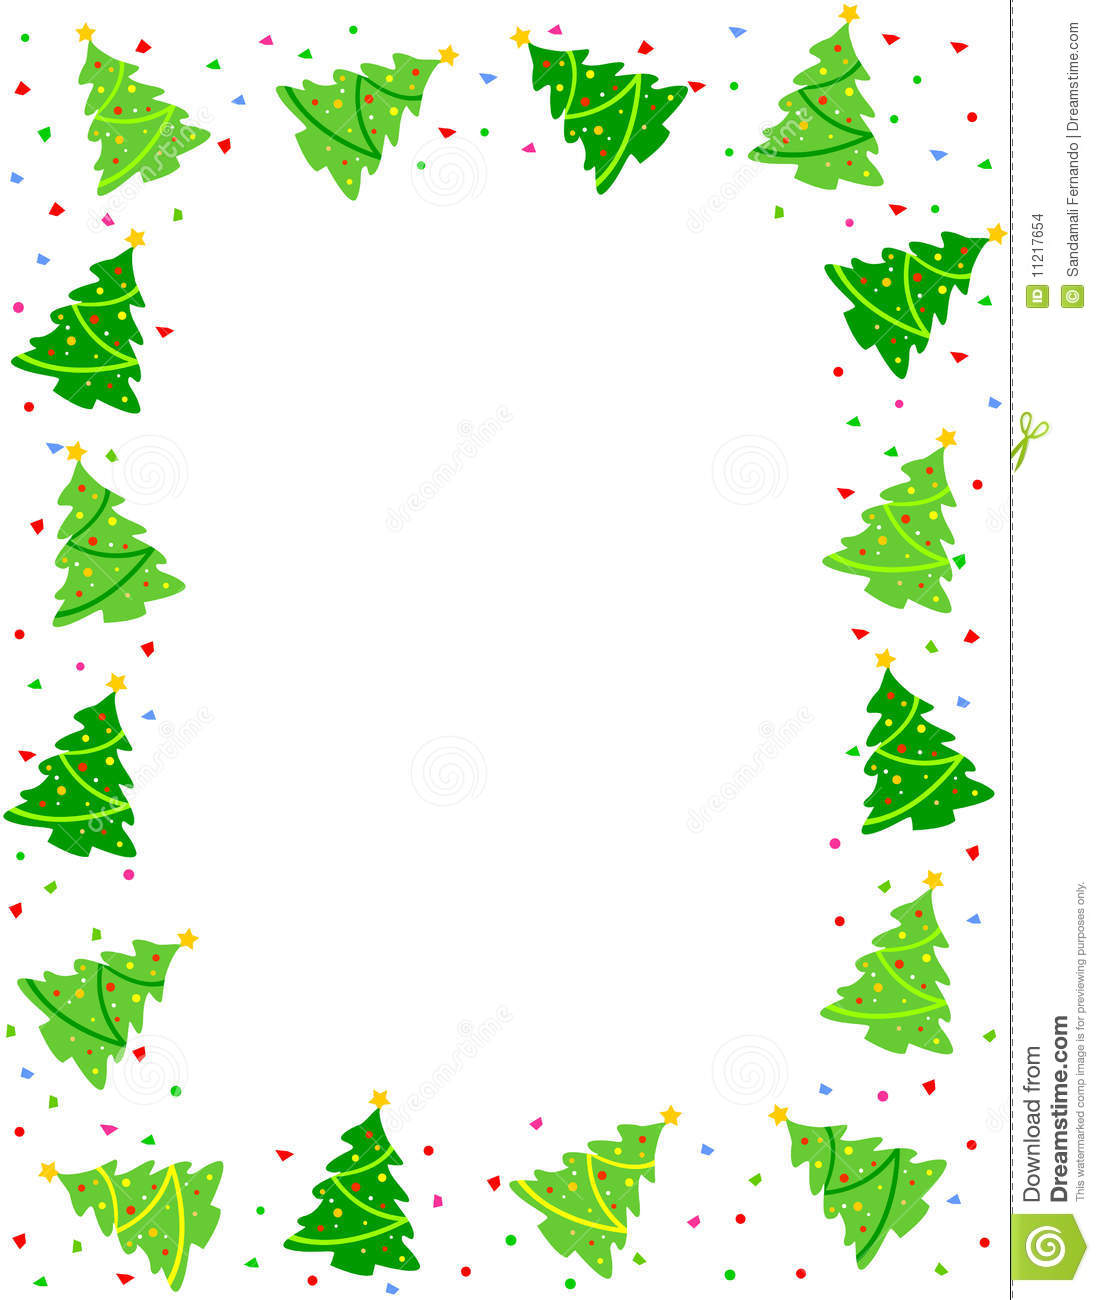 Beautiful christmas trees with colorful falling confetti border.: https://www.dreamstime.com/stock-images-christmas-tree-border...